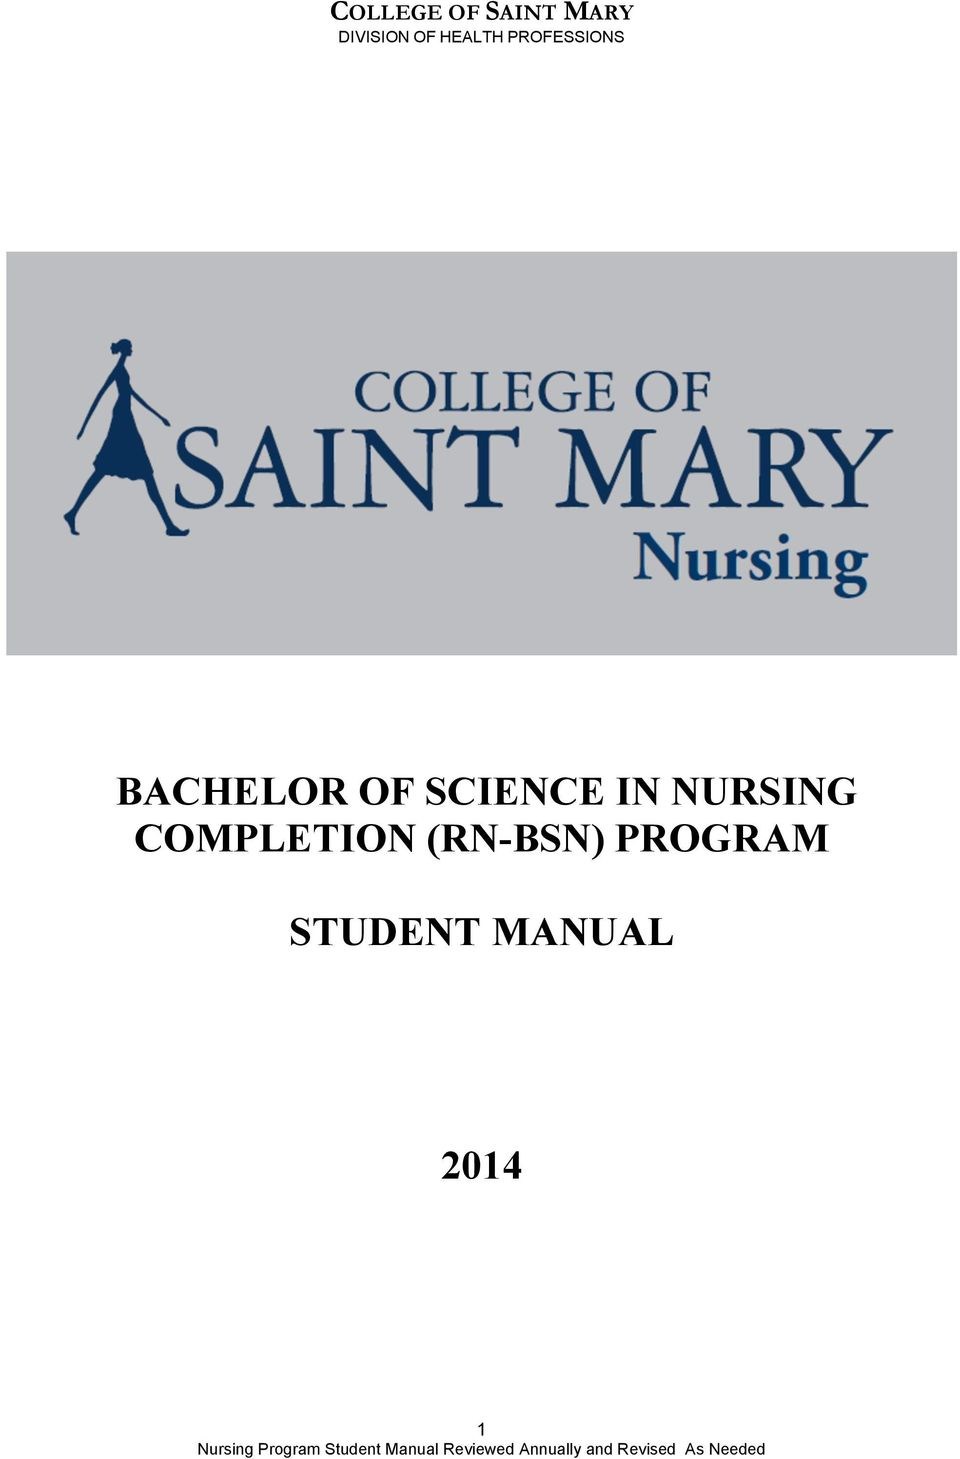 COMPLETION (RN-BSN)